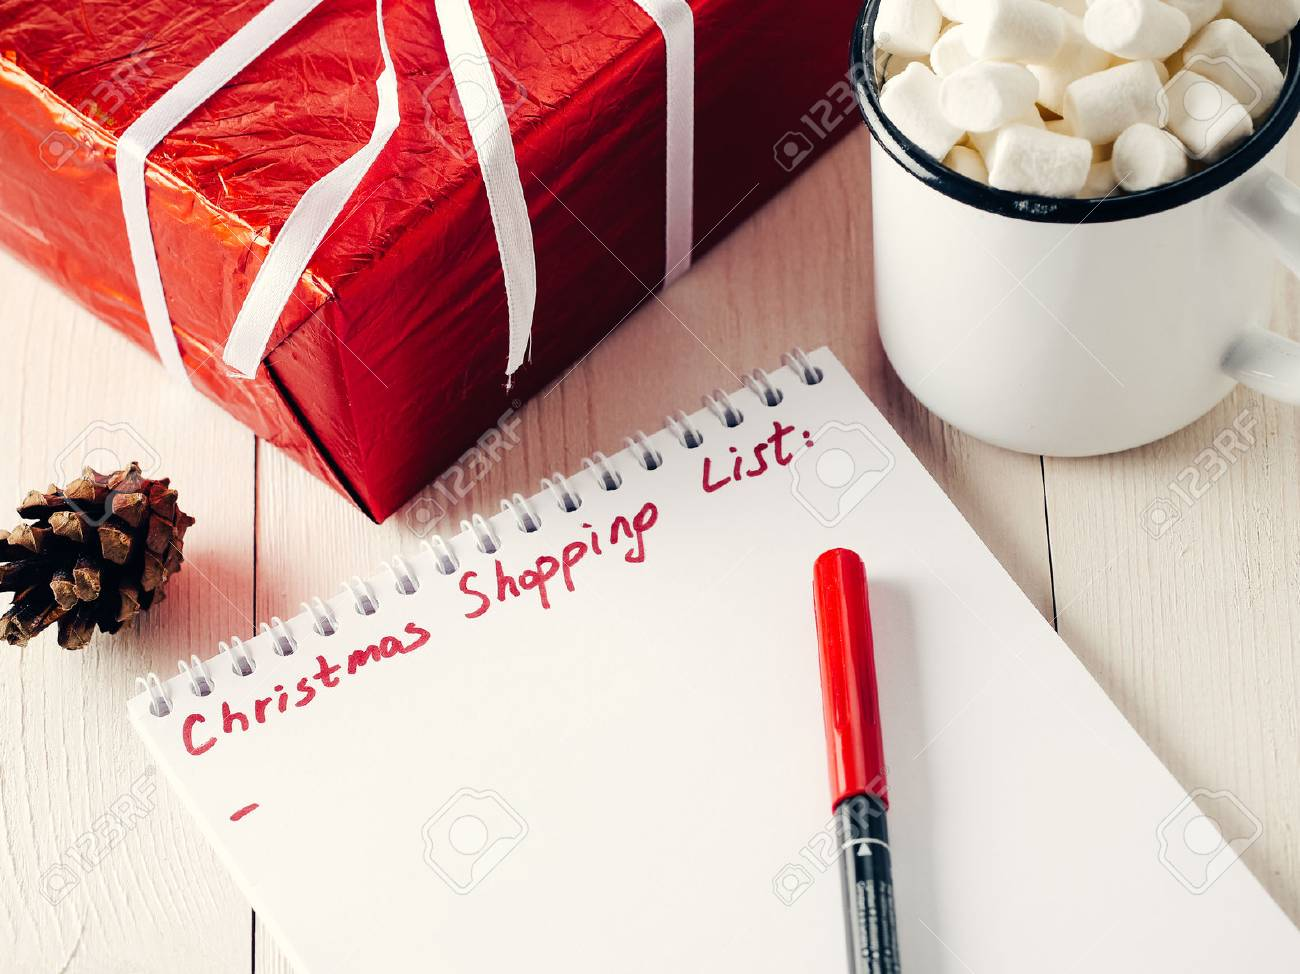 Christmas gifts shopping planning list - 87615992